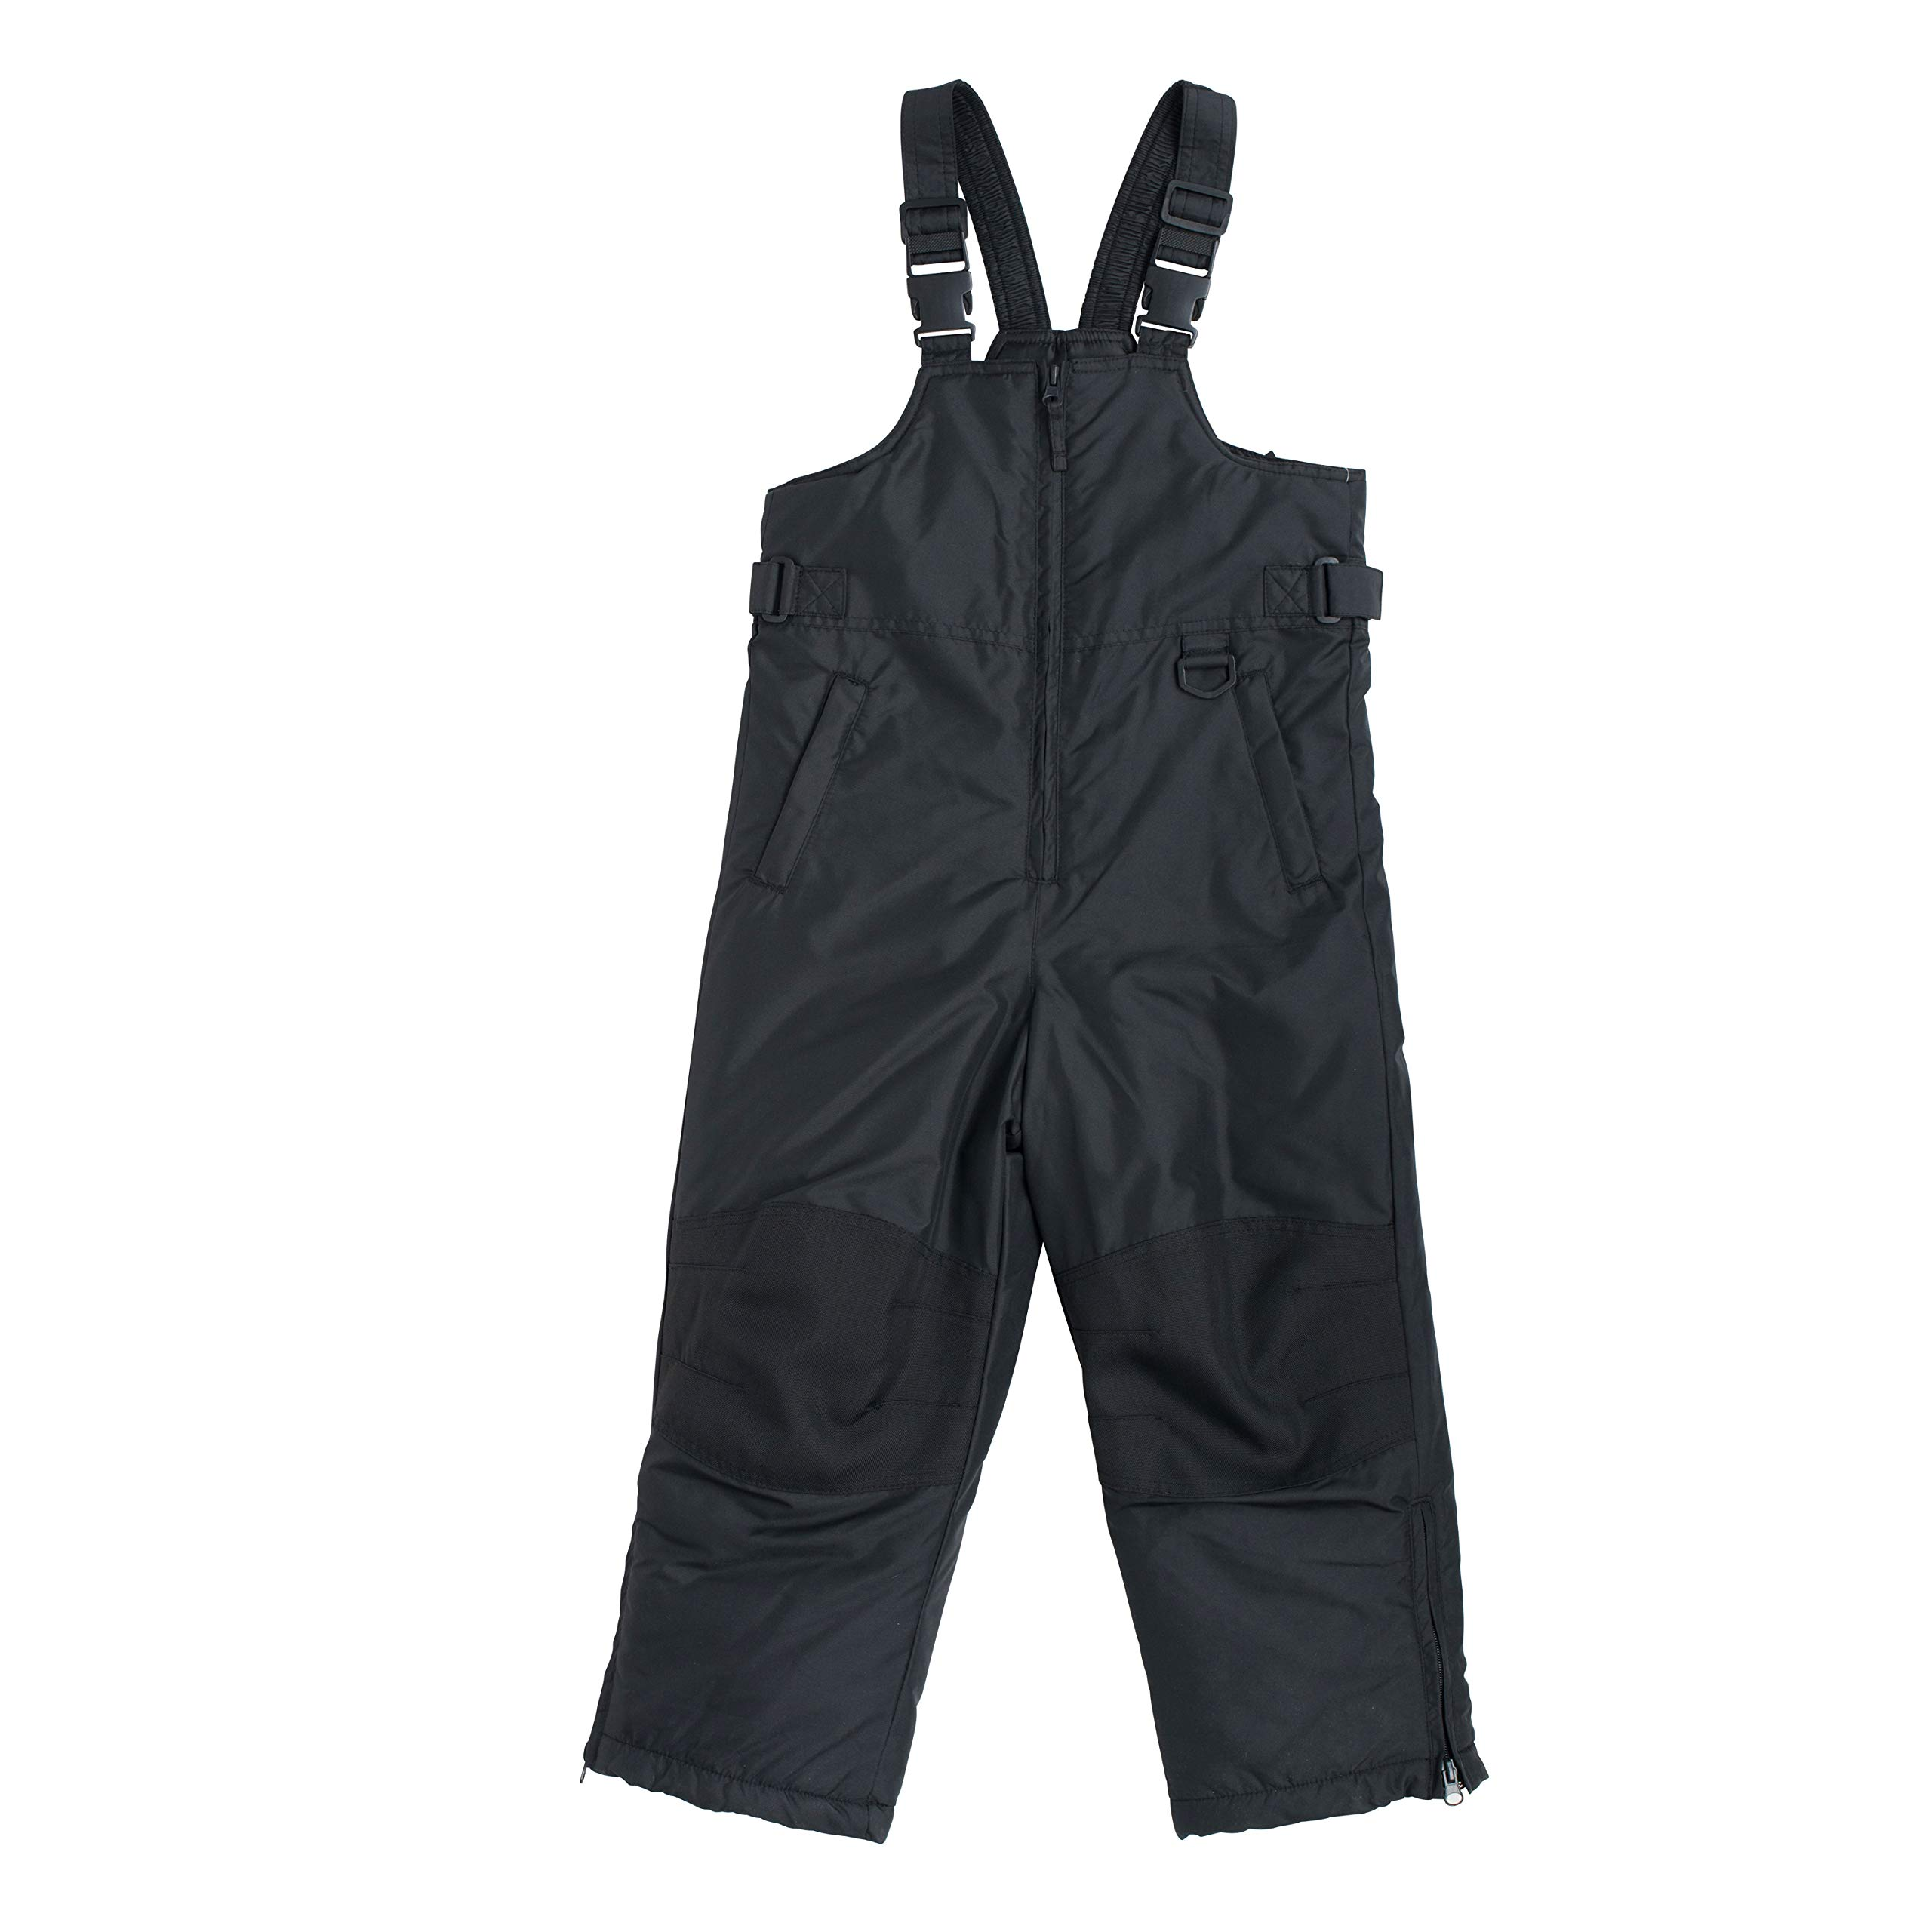 Snowsuits for Kids Husky Insulated Bib Snow Pants Black (8-10 Husky) by Snowsuits for Kids